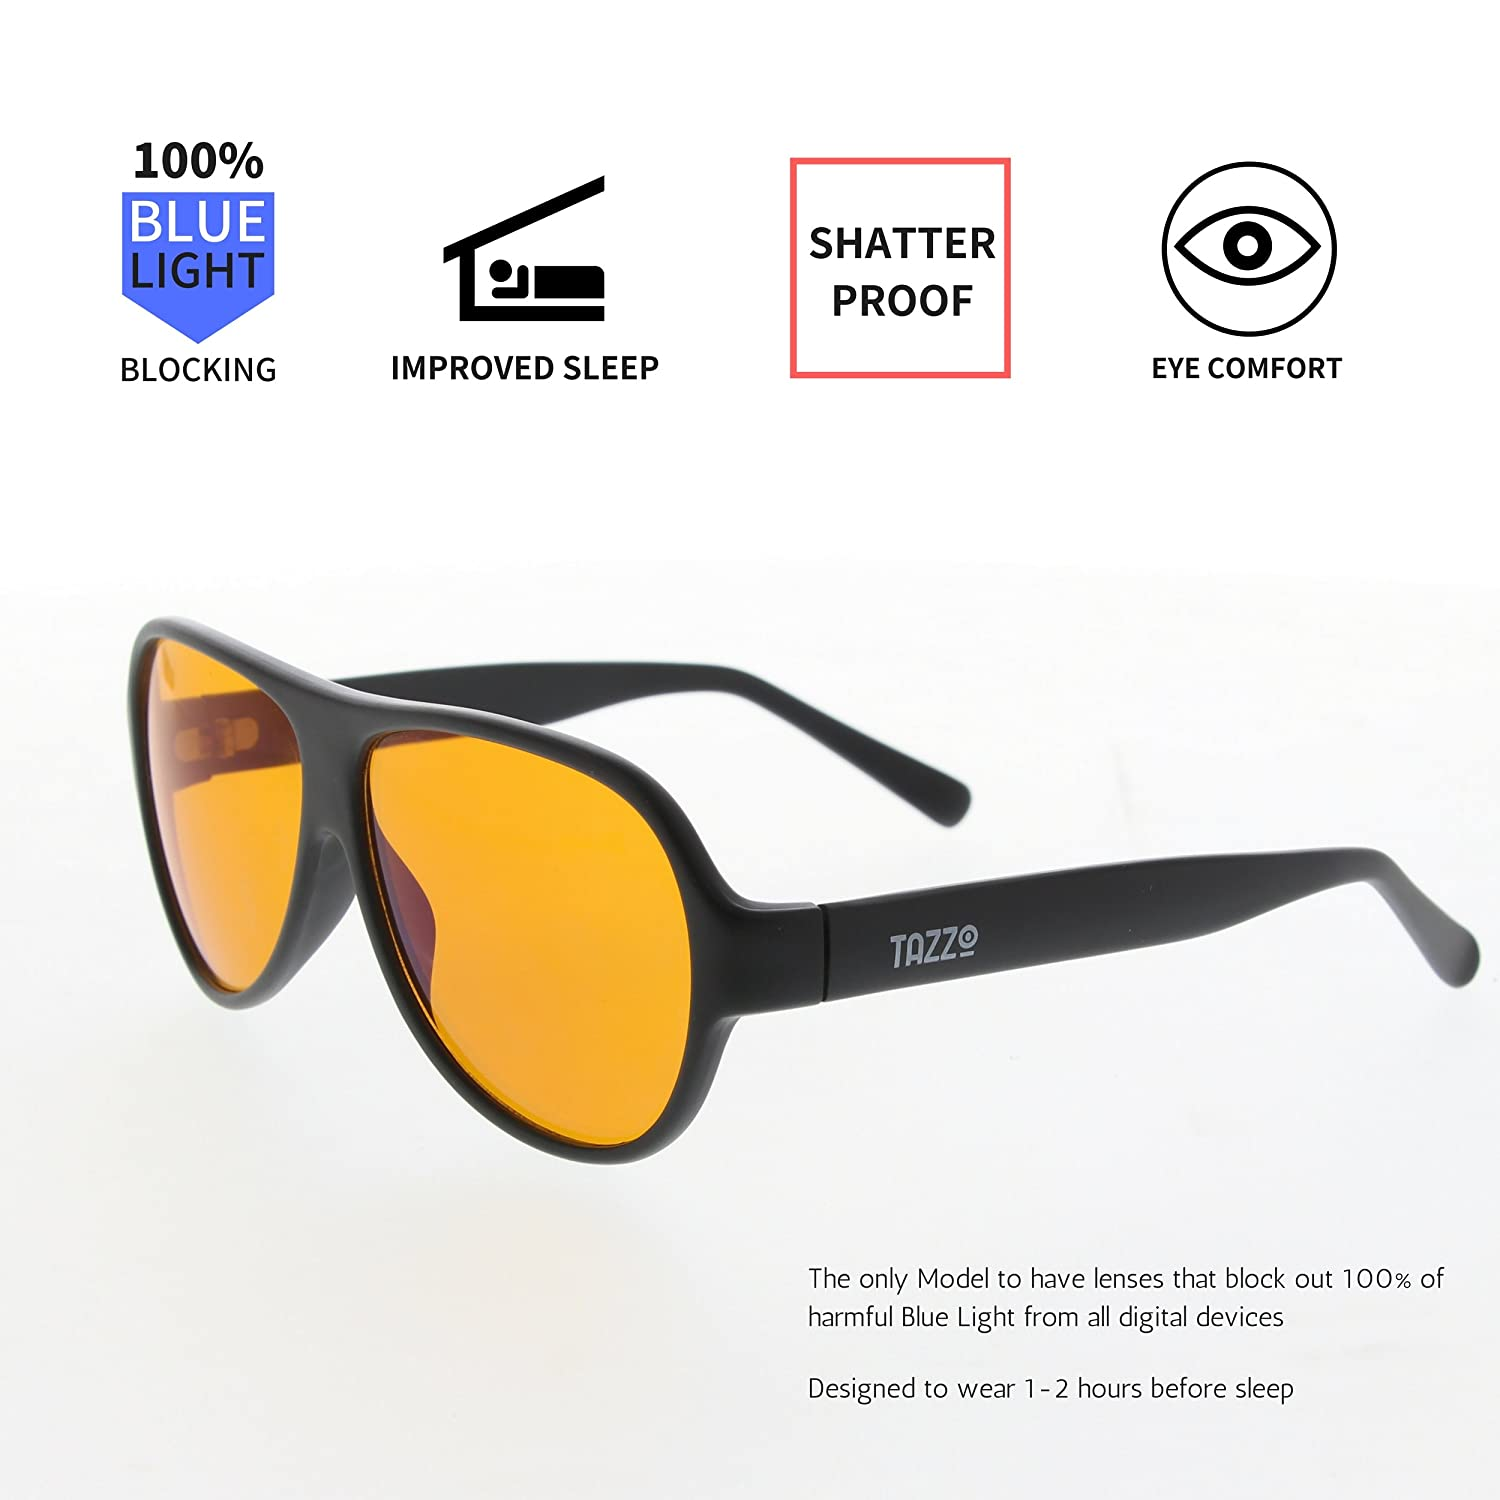 5feda230c2 100 Percent Blue Light Blocking Glasses - Anti-Blue Light Eyewear- PC Gamer  Glasses Computer Glasses - Digital Eyewear- Prevent Digital Eyestrain -  Improve ...